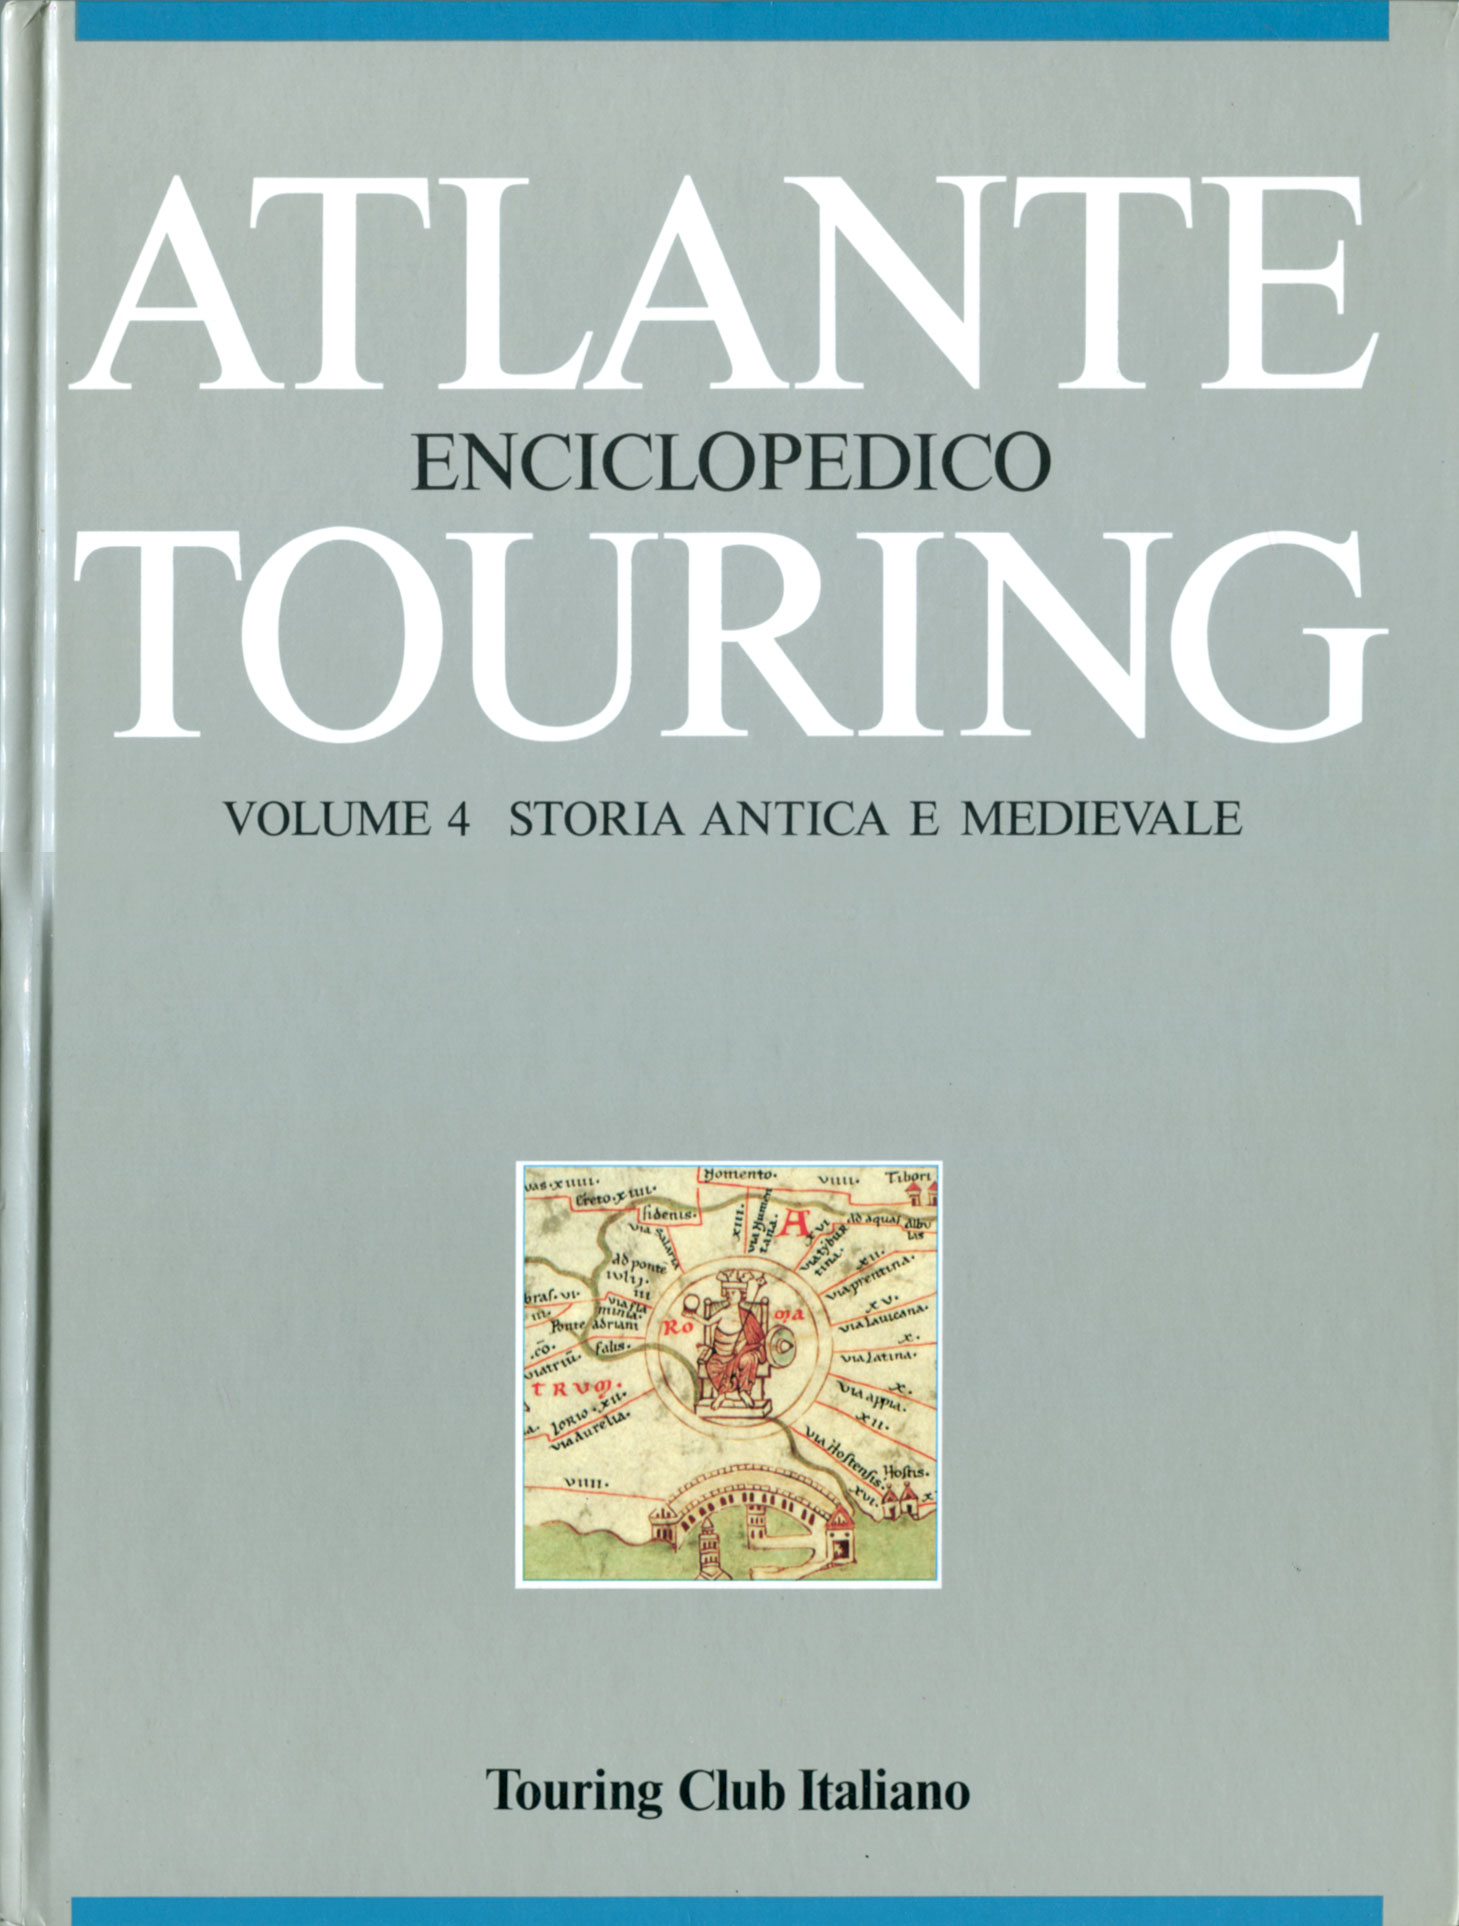 Atlante enciclopedico Touring Vol. 4